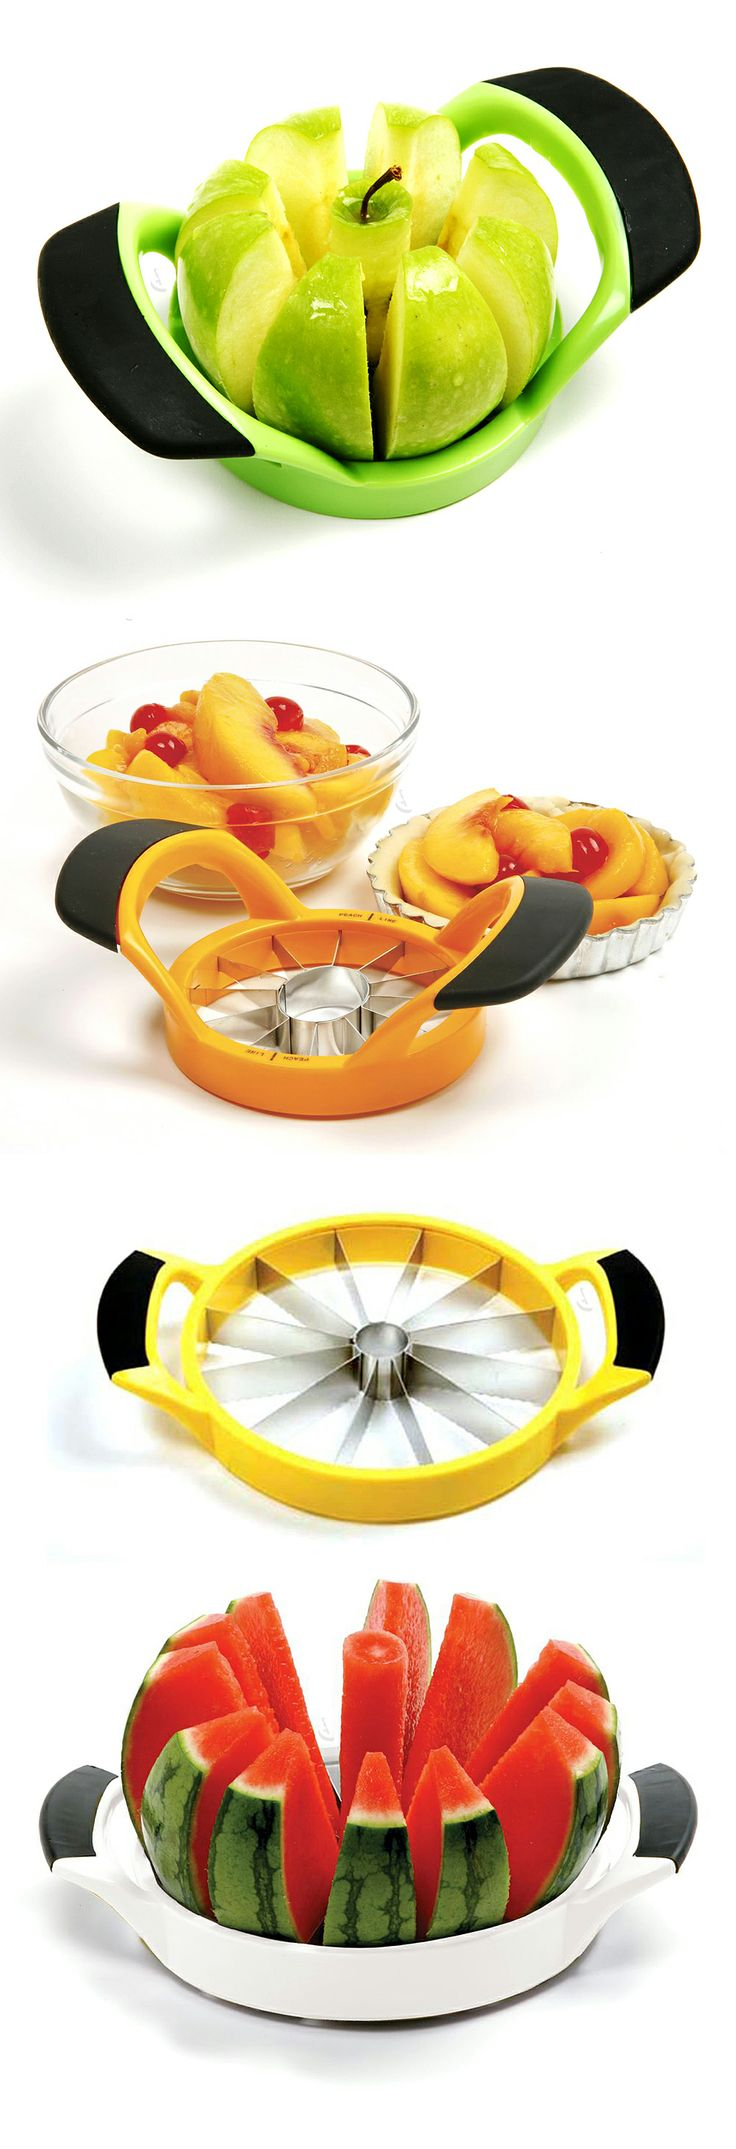 Fruit Cutter // 3 sizes, for perfectly sliced peaches, to cored and sliced apples, all the way to cutting melons!